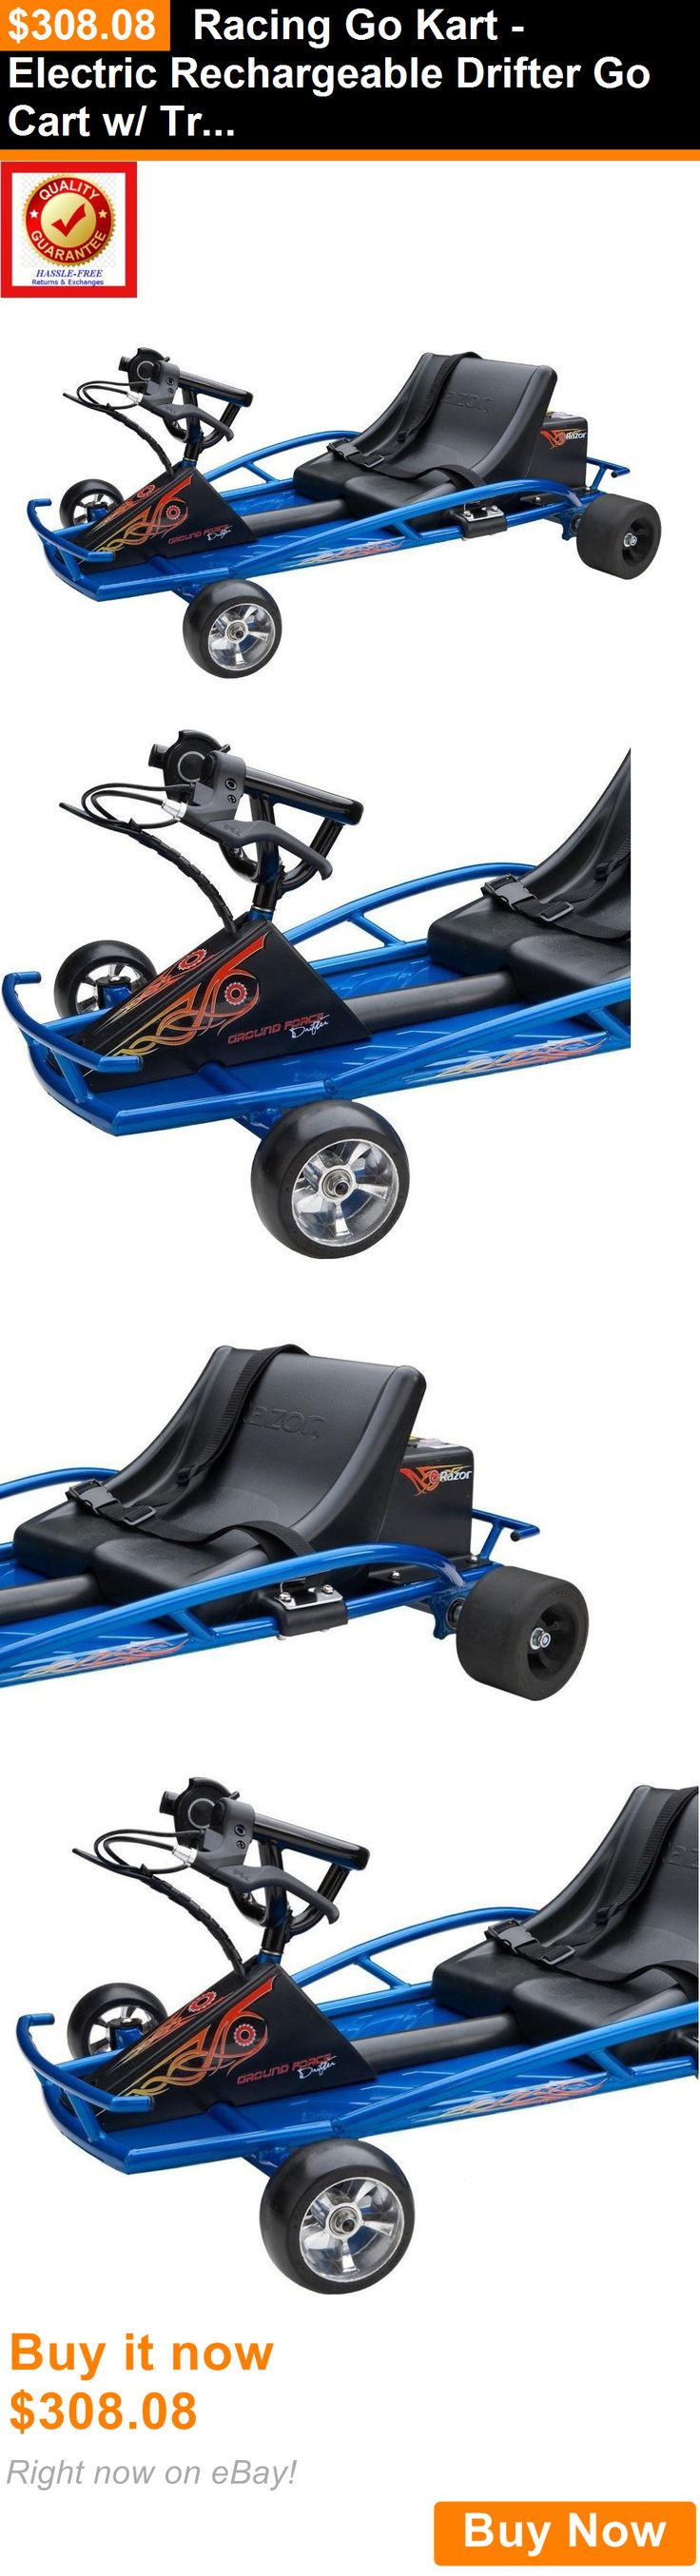 Complete Go-Karts and Frames 64656: Racing Go Kart - Electric Rechargeable Drifter Go Cart W/ Trigger Acceleration BUY IT NOW ONLY: $308.08